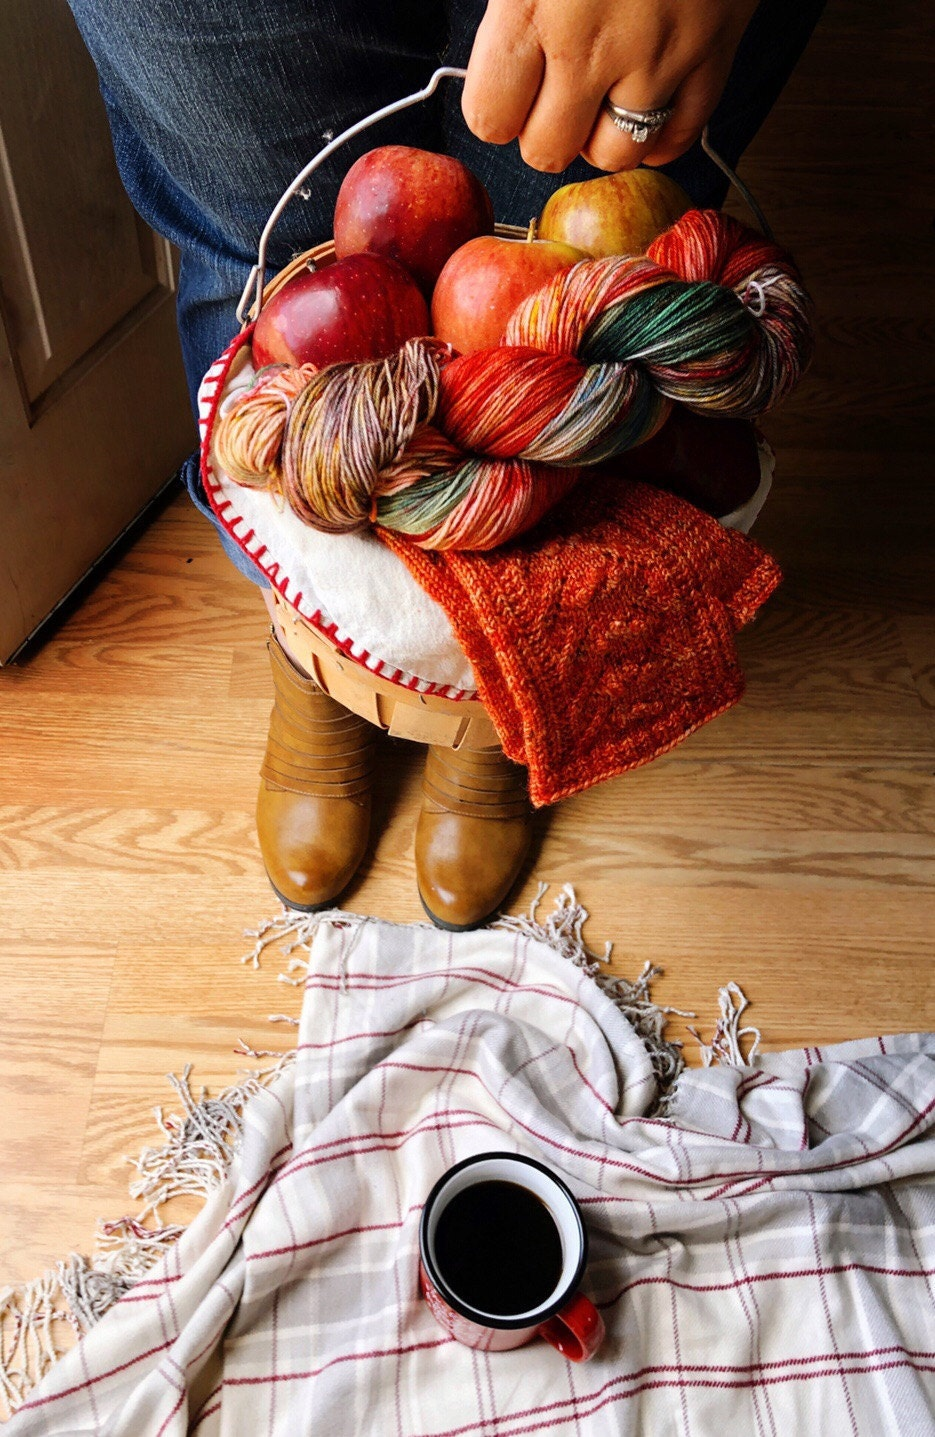 Apple picking, bonfires, boots, jeans, yarn and more yarn